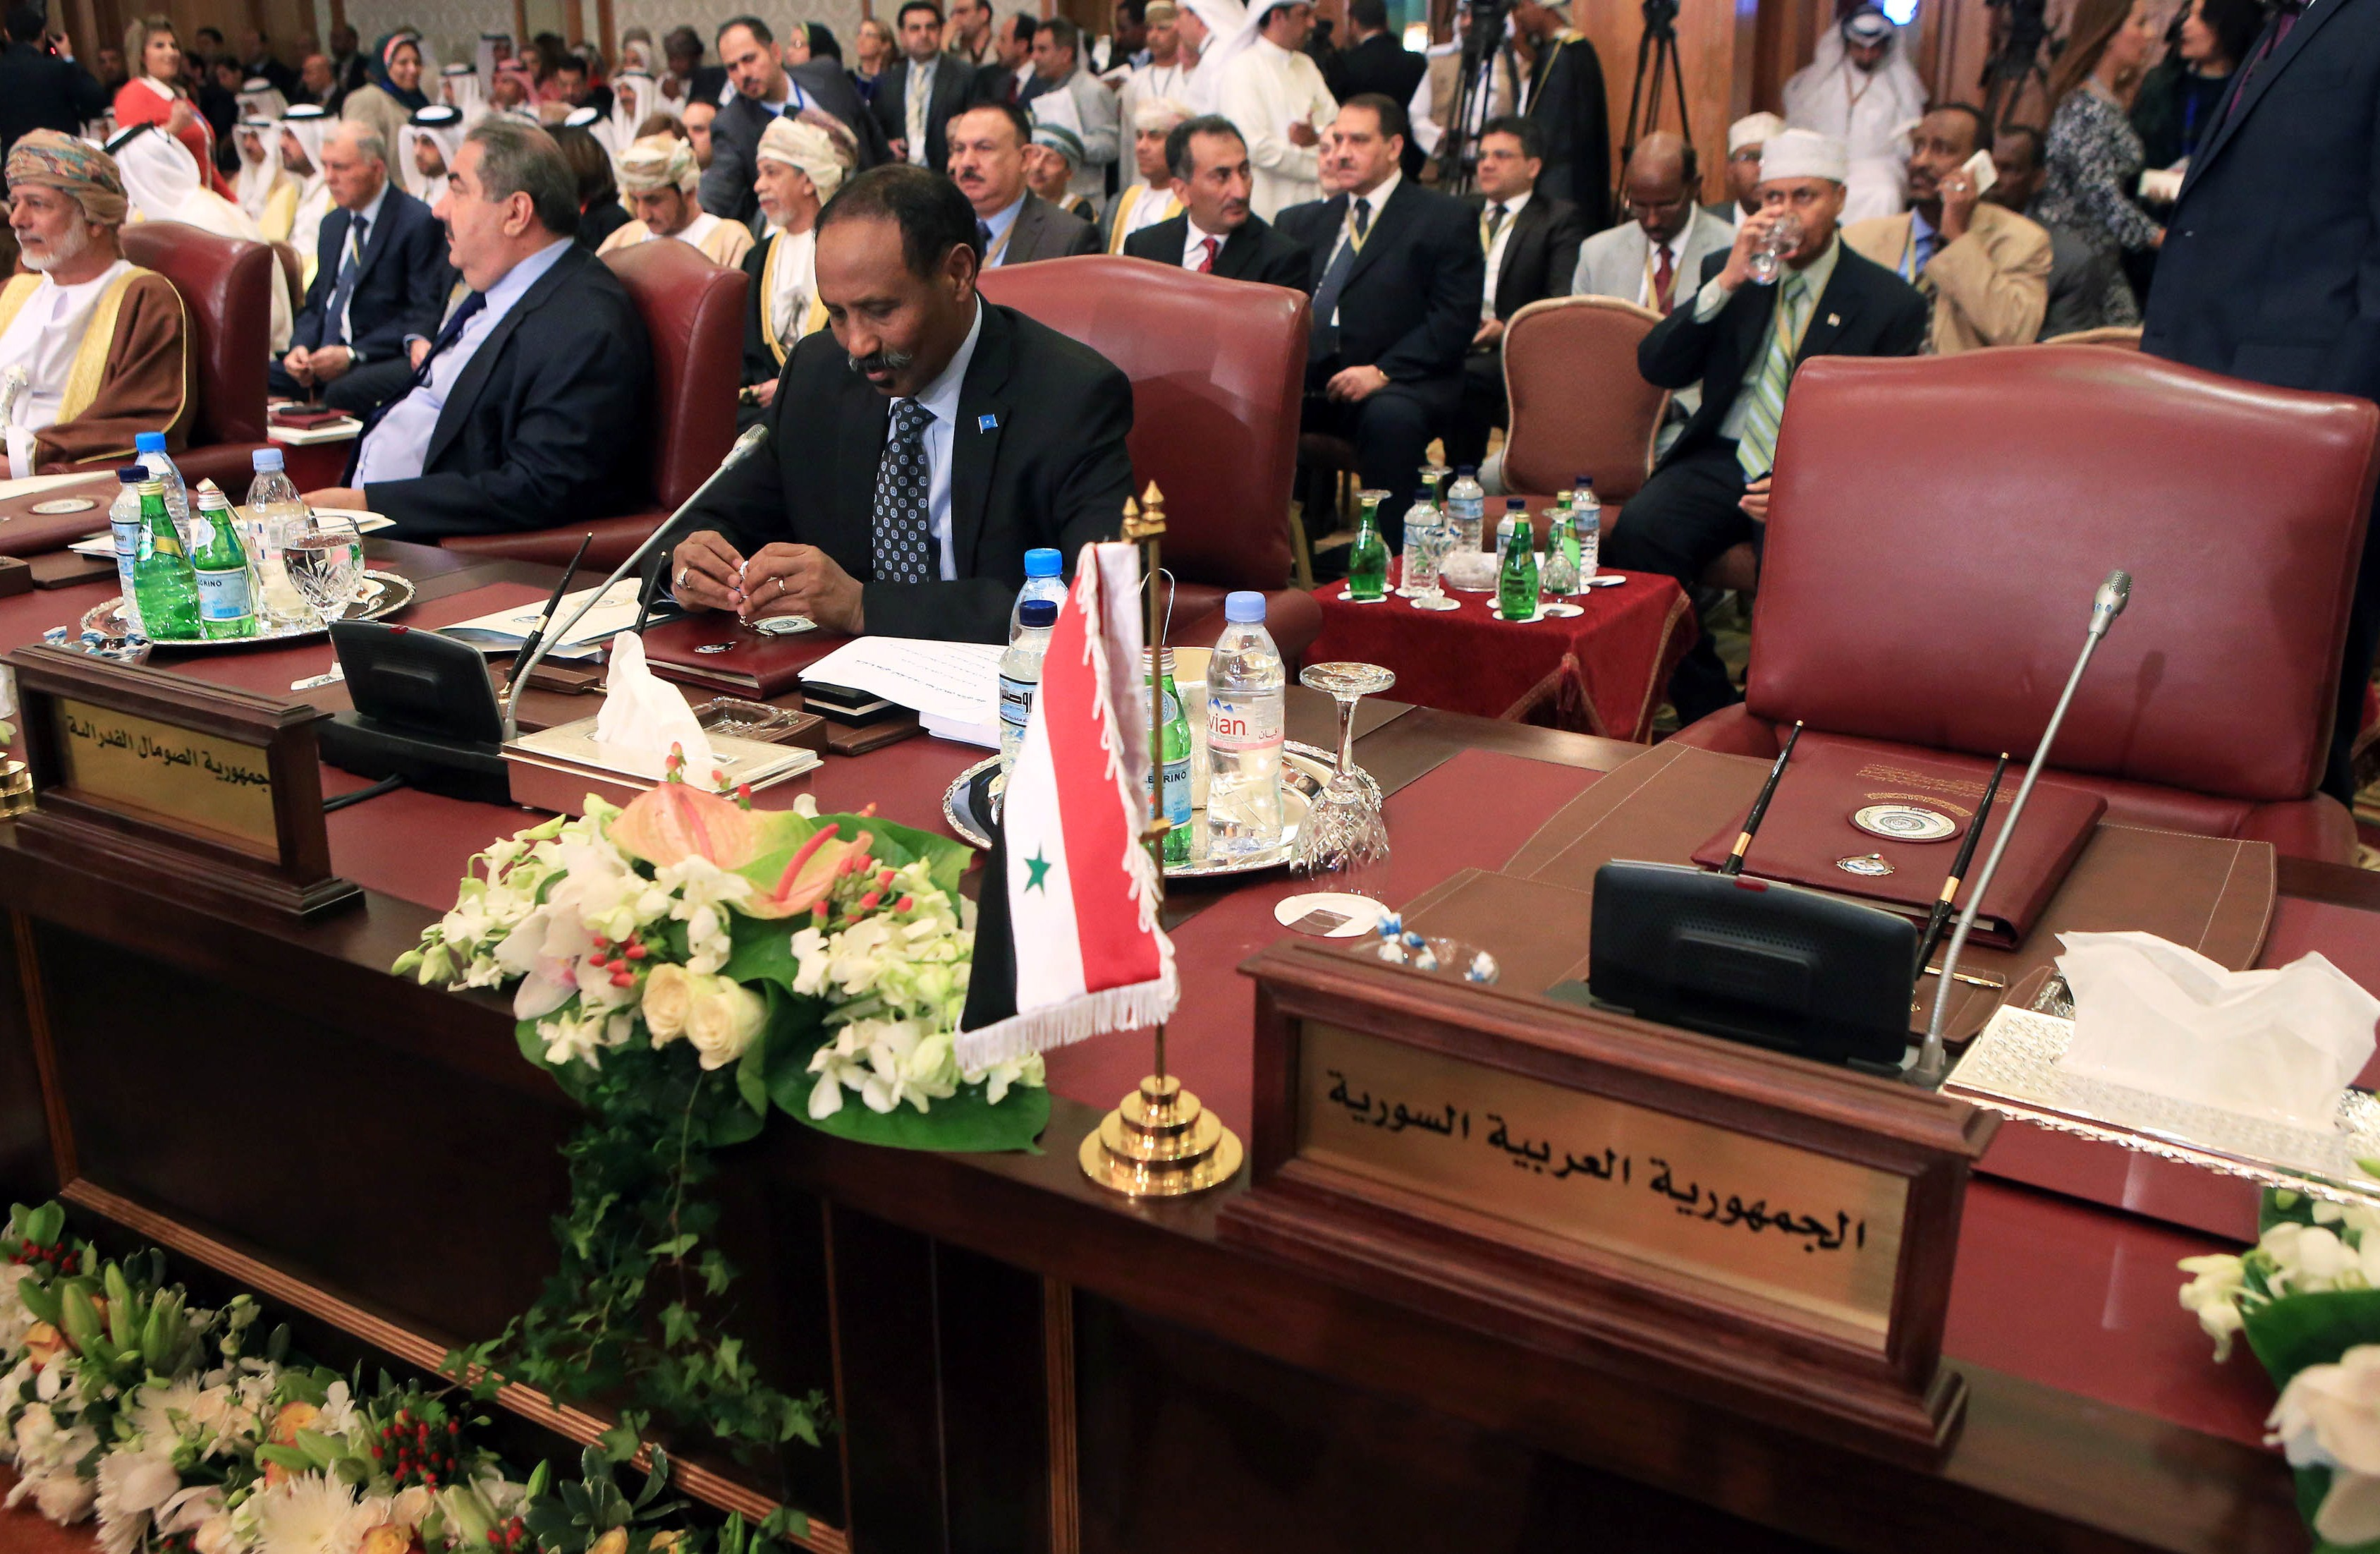 Somalian Foreign Minister Abdirahman Udale Bayle (C) sits next to empty Syrian seat at the opening session of the Arab League Foreign ministers's meeting in preparation for the Arab Summit in Kuwait City, on March 23, 2014.  (AFP PHOTO/YASSER AL-ZAYYAT)